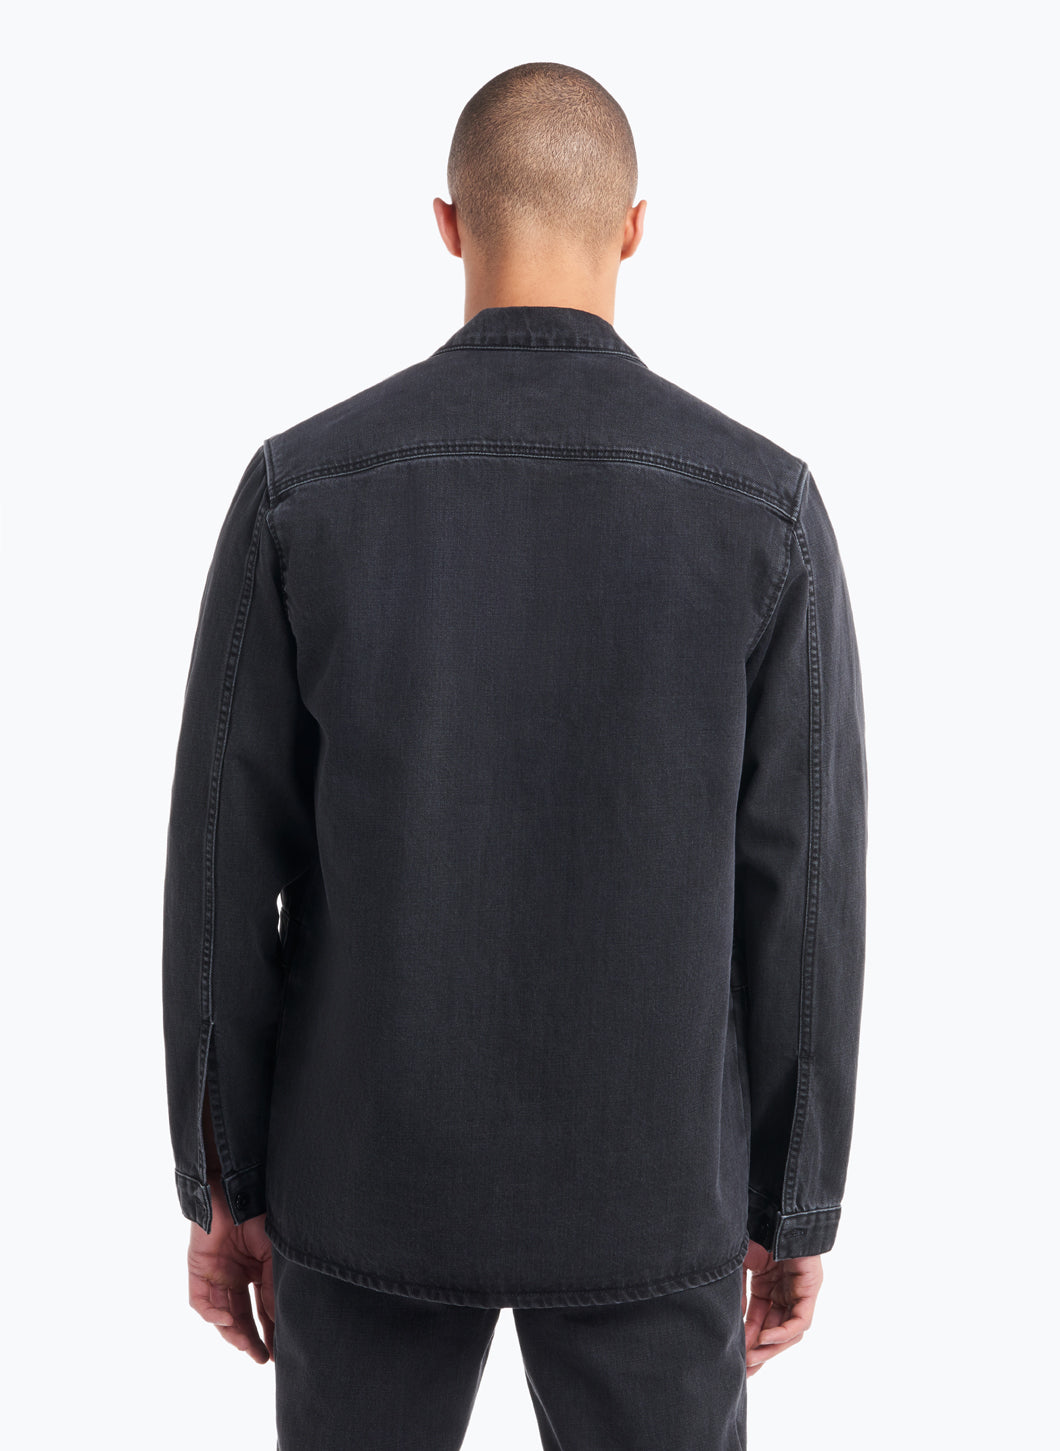 Jacket-Shirt with Flap Pockets in Black Denim